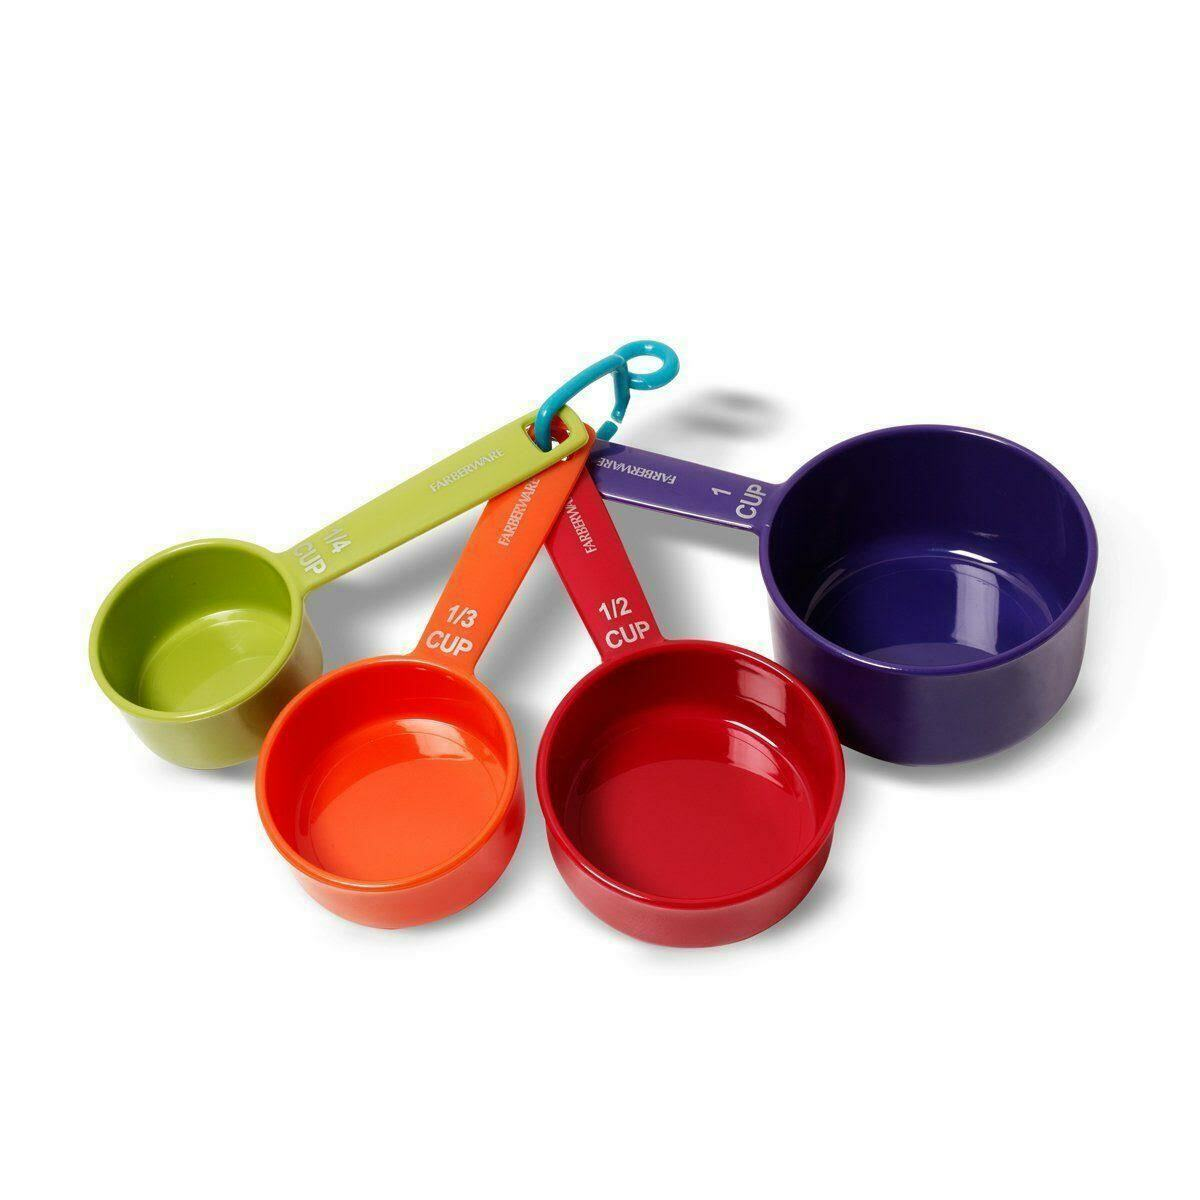 Farberware Professional Plastic Measuring Cups, Assorted Colors, Set of 4 NEW!